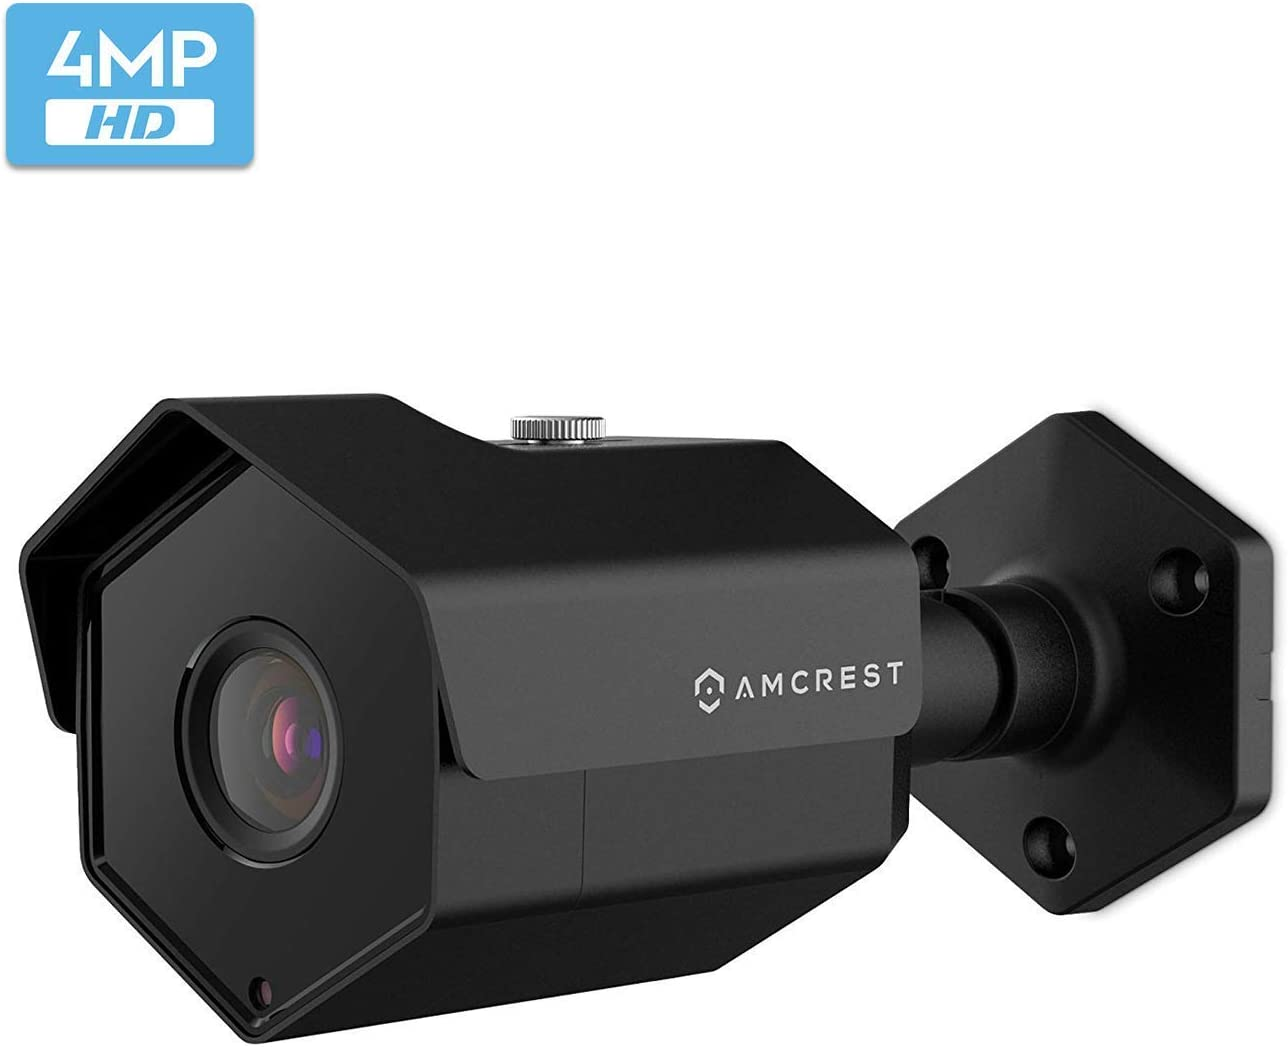 Amcrest UltraHD 4MP Outdoor POE Camera 2688 x 1520p Bullet IP Security Camera, Outdoor IP67 Waterproof, 118° Viewing Angle, 98ft Night Vision, 4-Megapixel, IP4M-1026EB (Black)